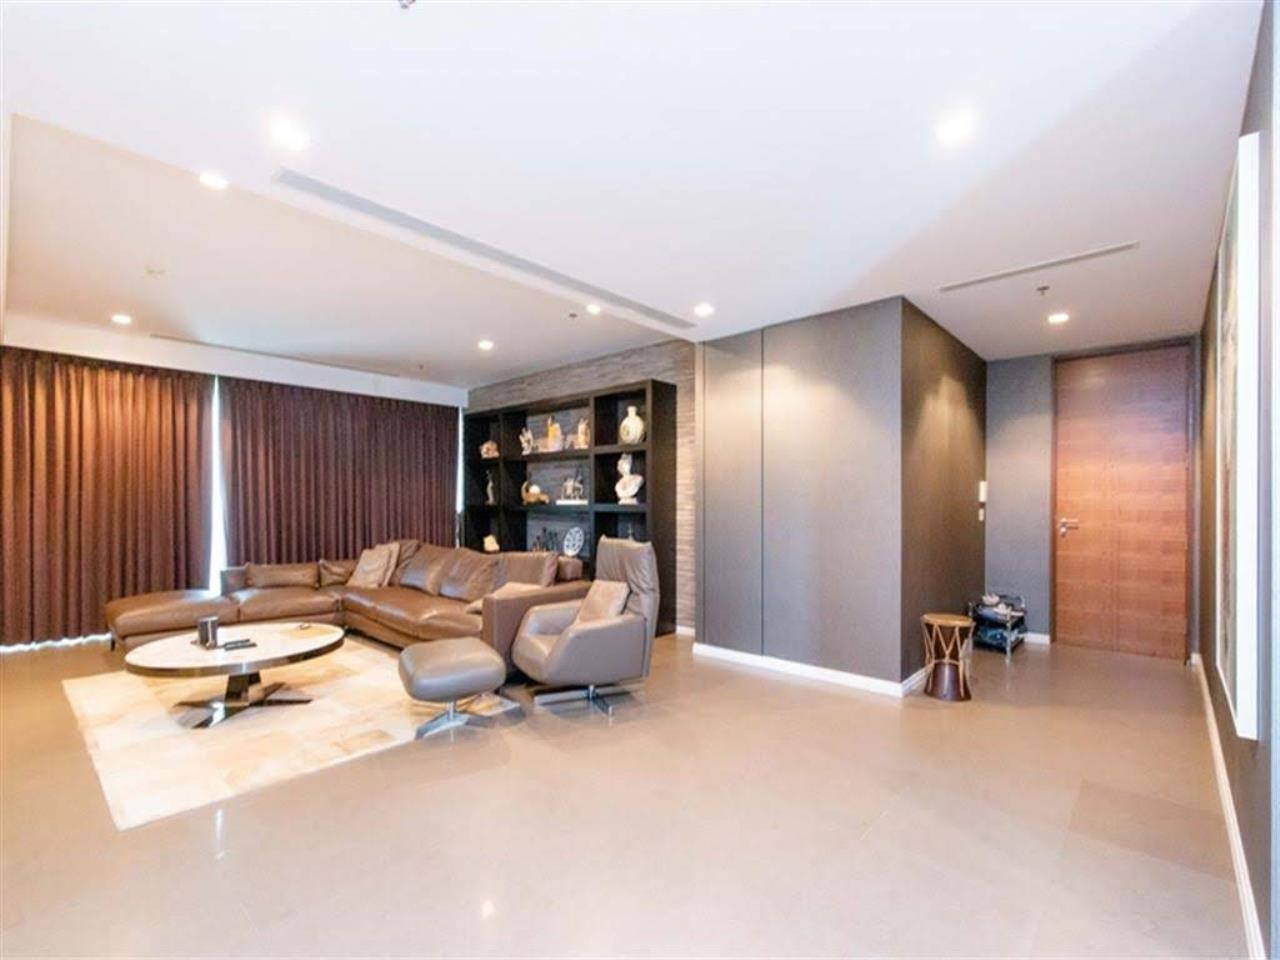 Bestbkkcondos Agency's The River - 233,8 sqm - For Sale : 52 000 000 THB - 3 Bedrooms 16